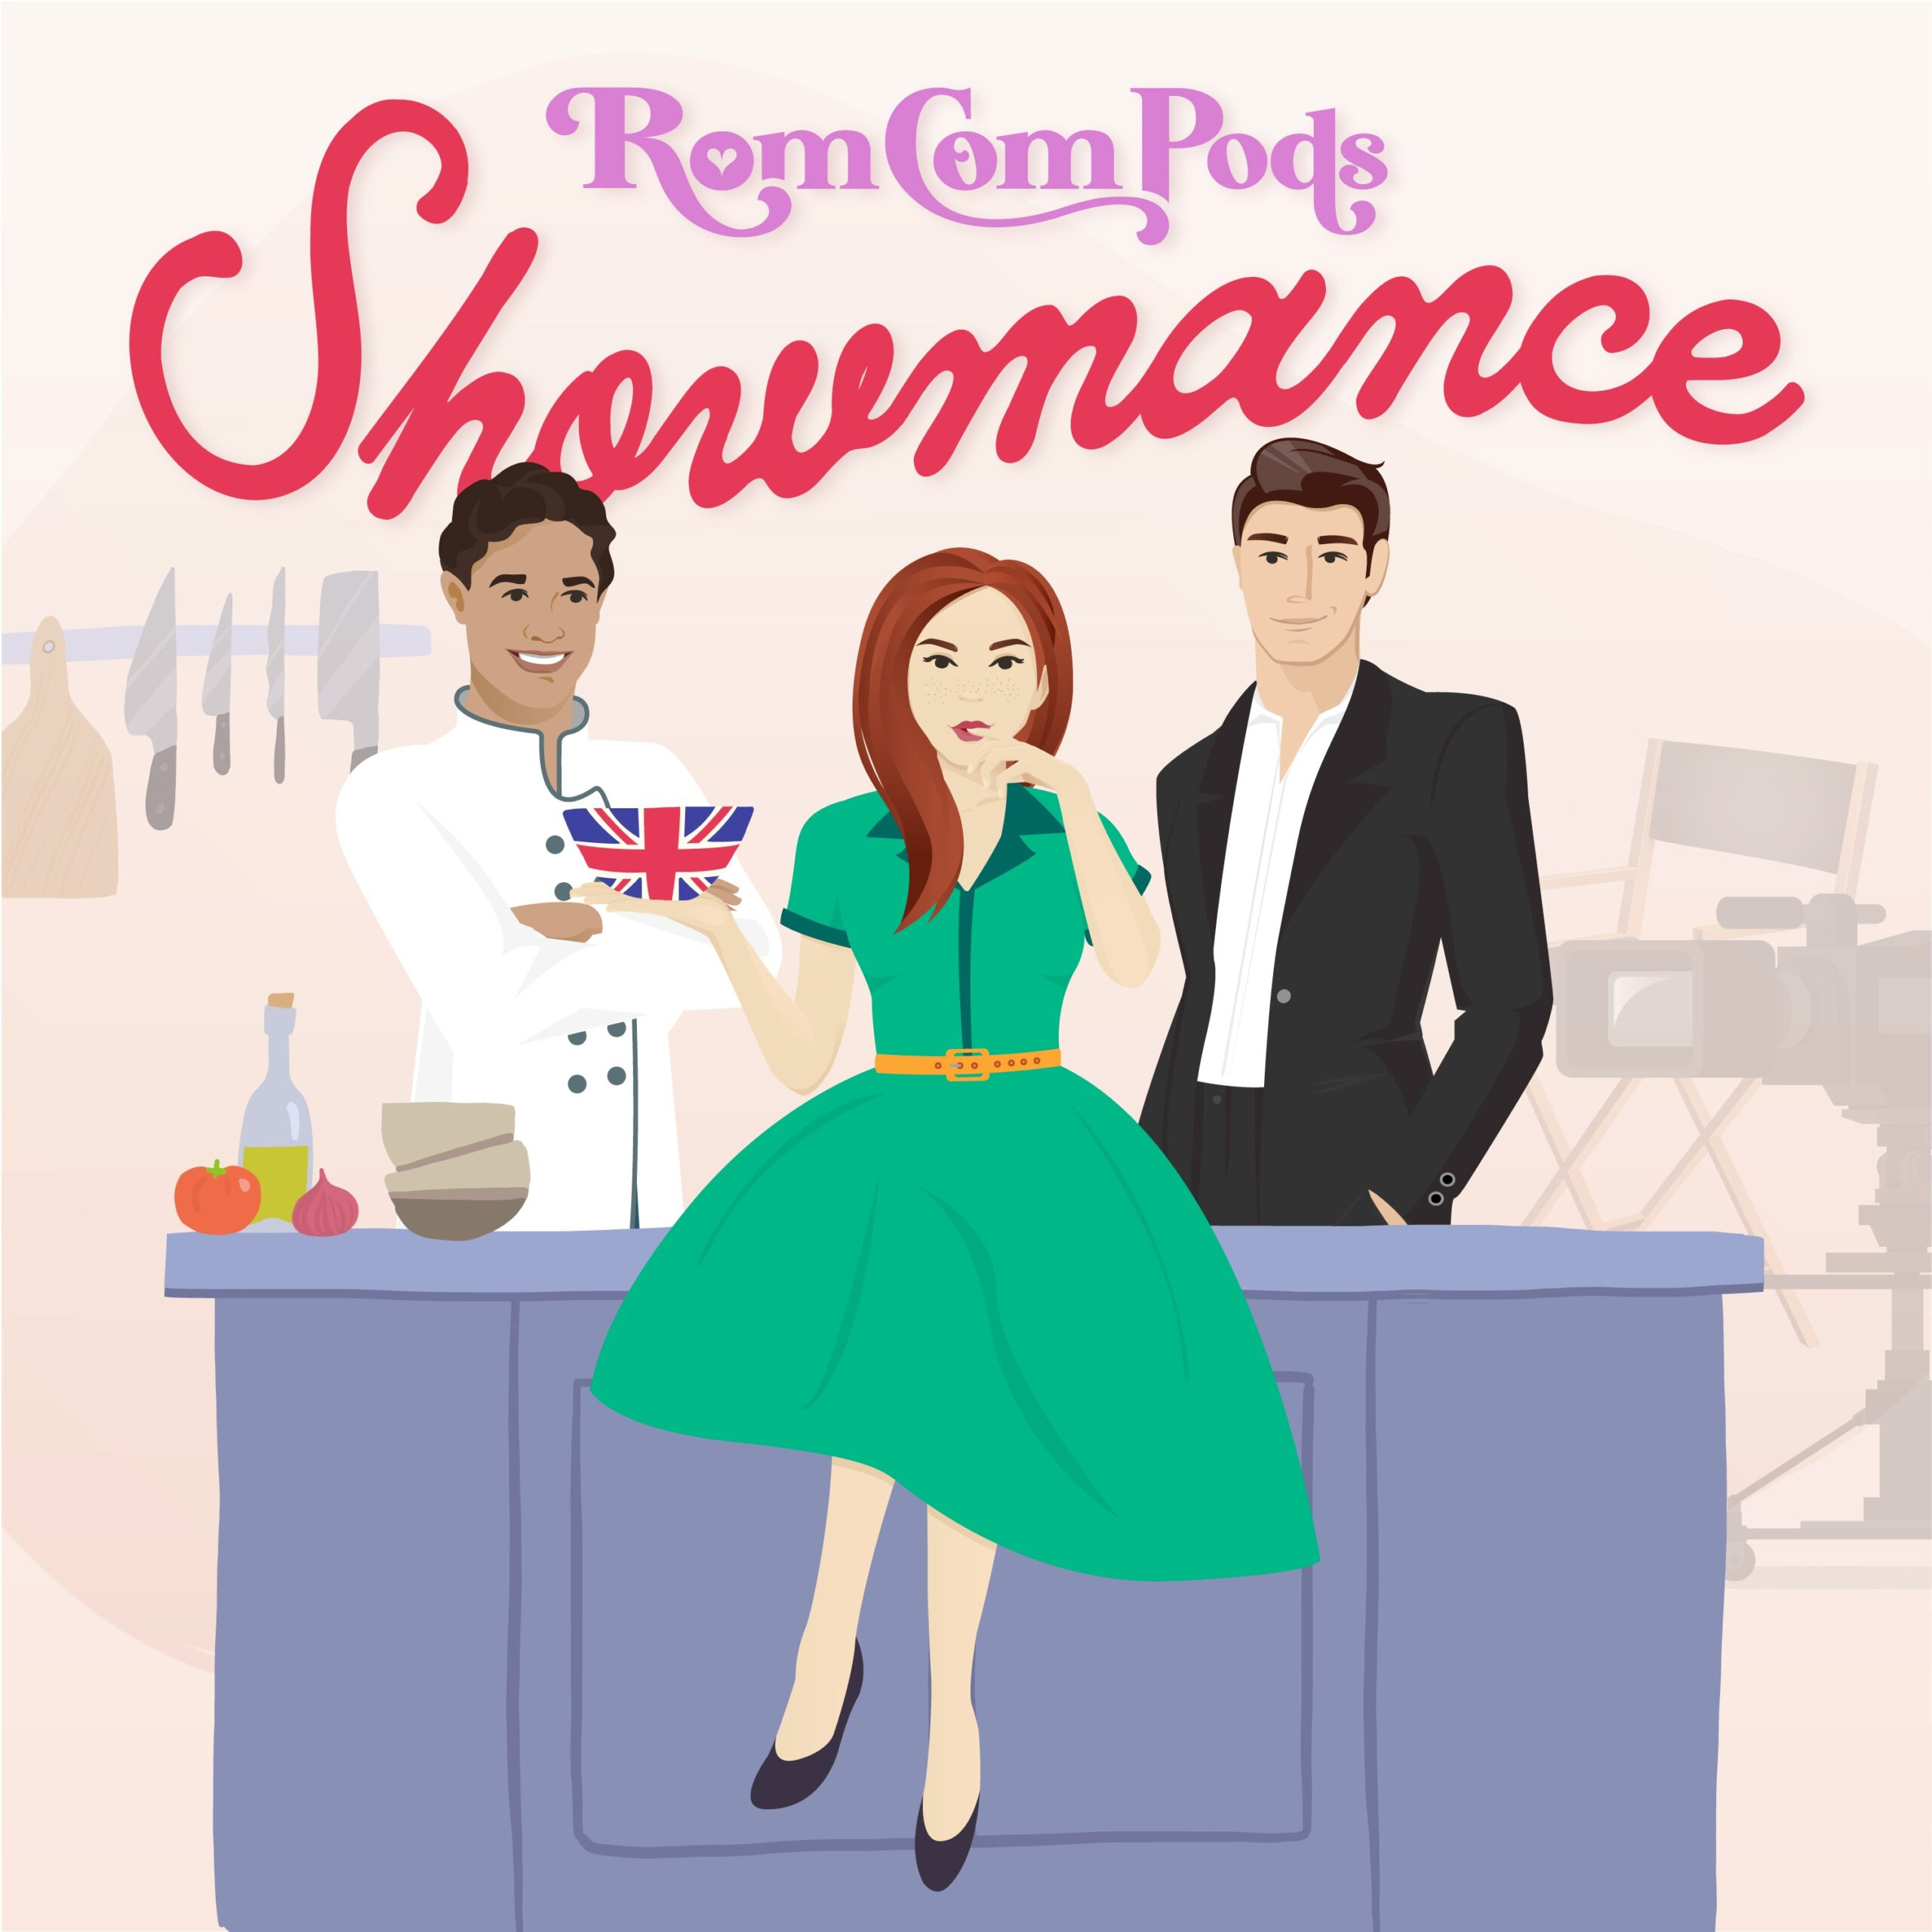 RomComPods Showmance | A Beachy Brand I Love, Pretty Knives, the new RomComPods and More Good Things.